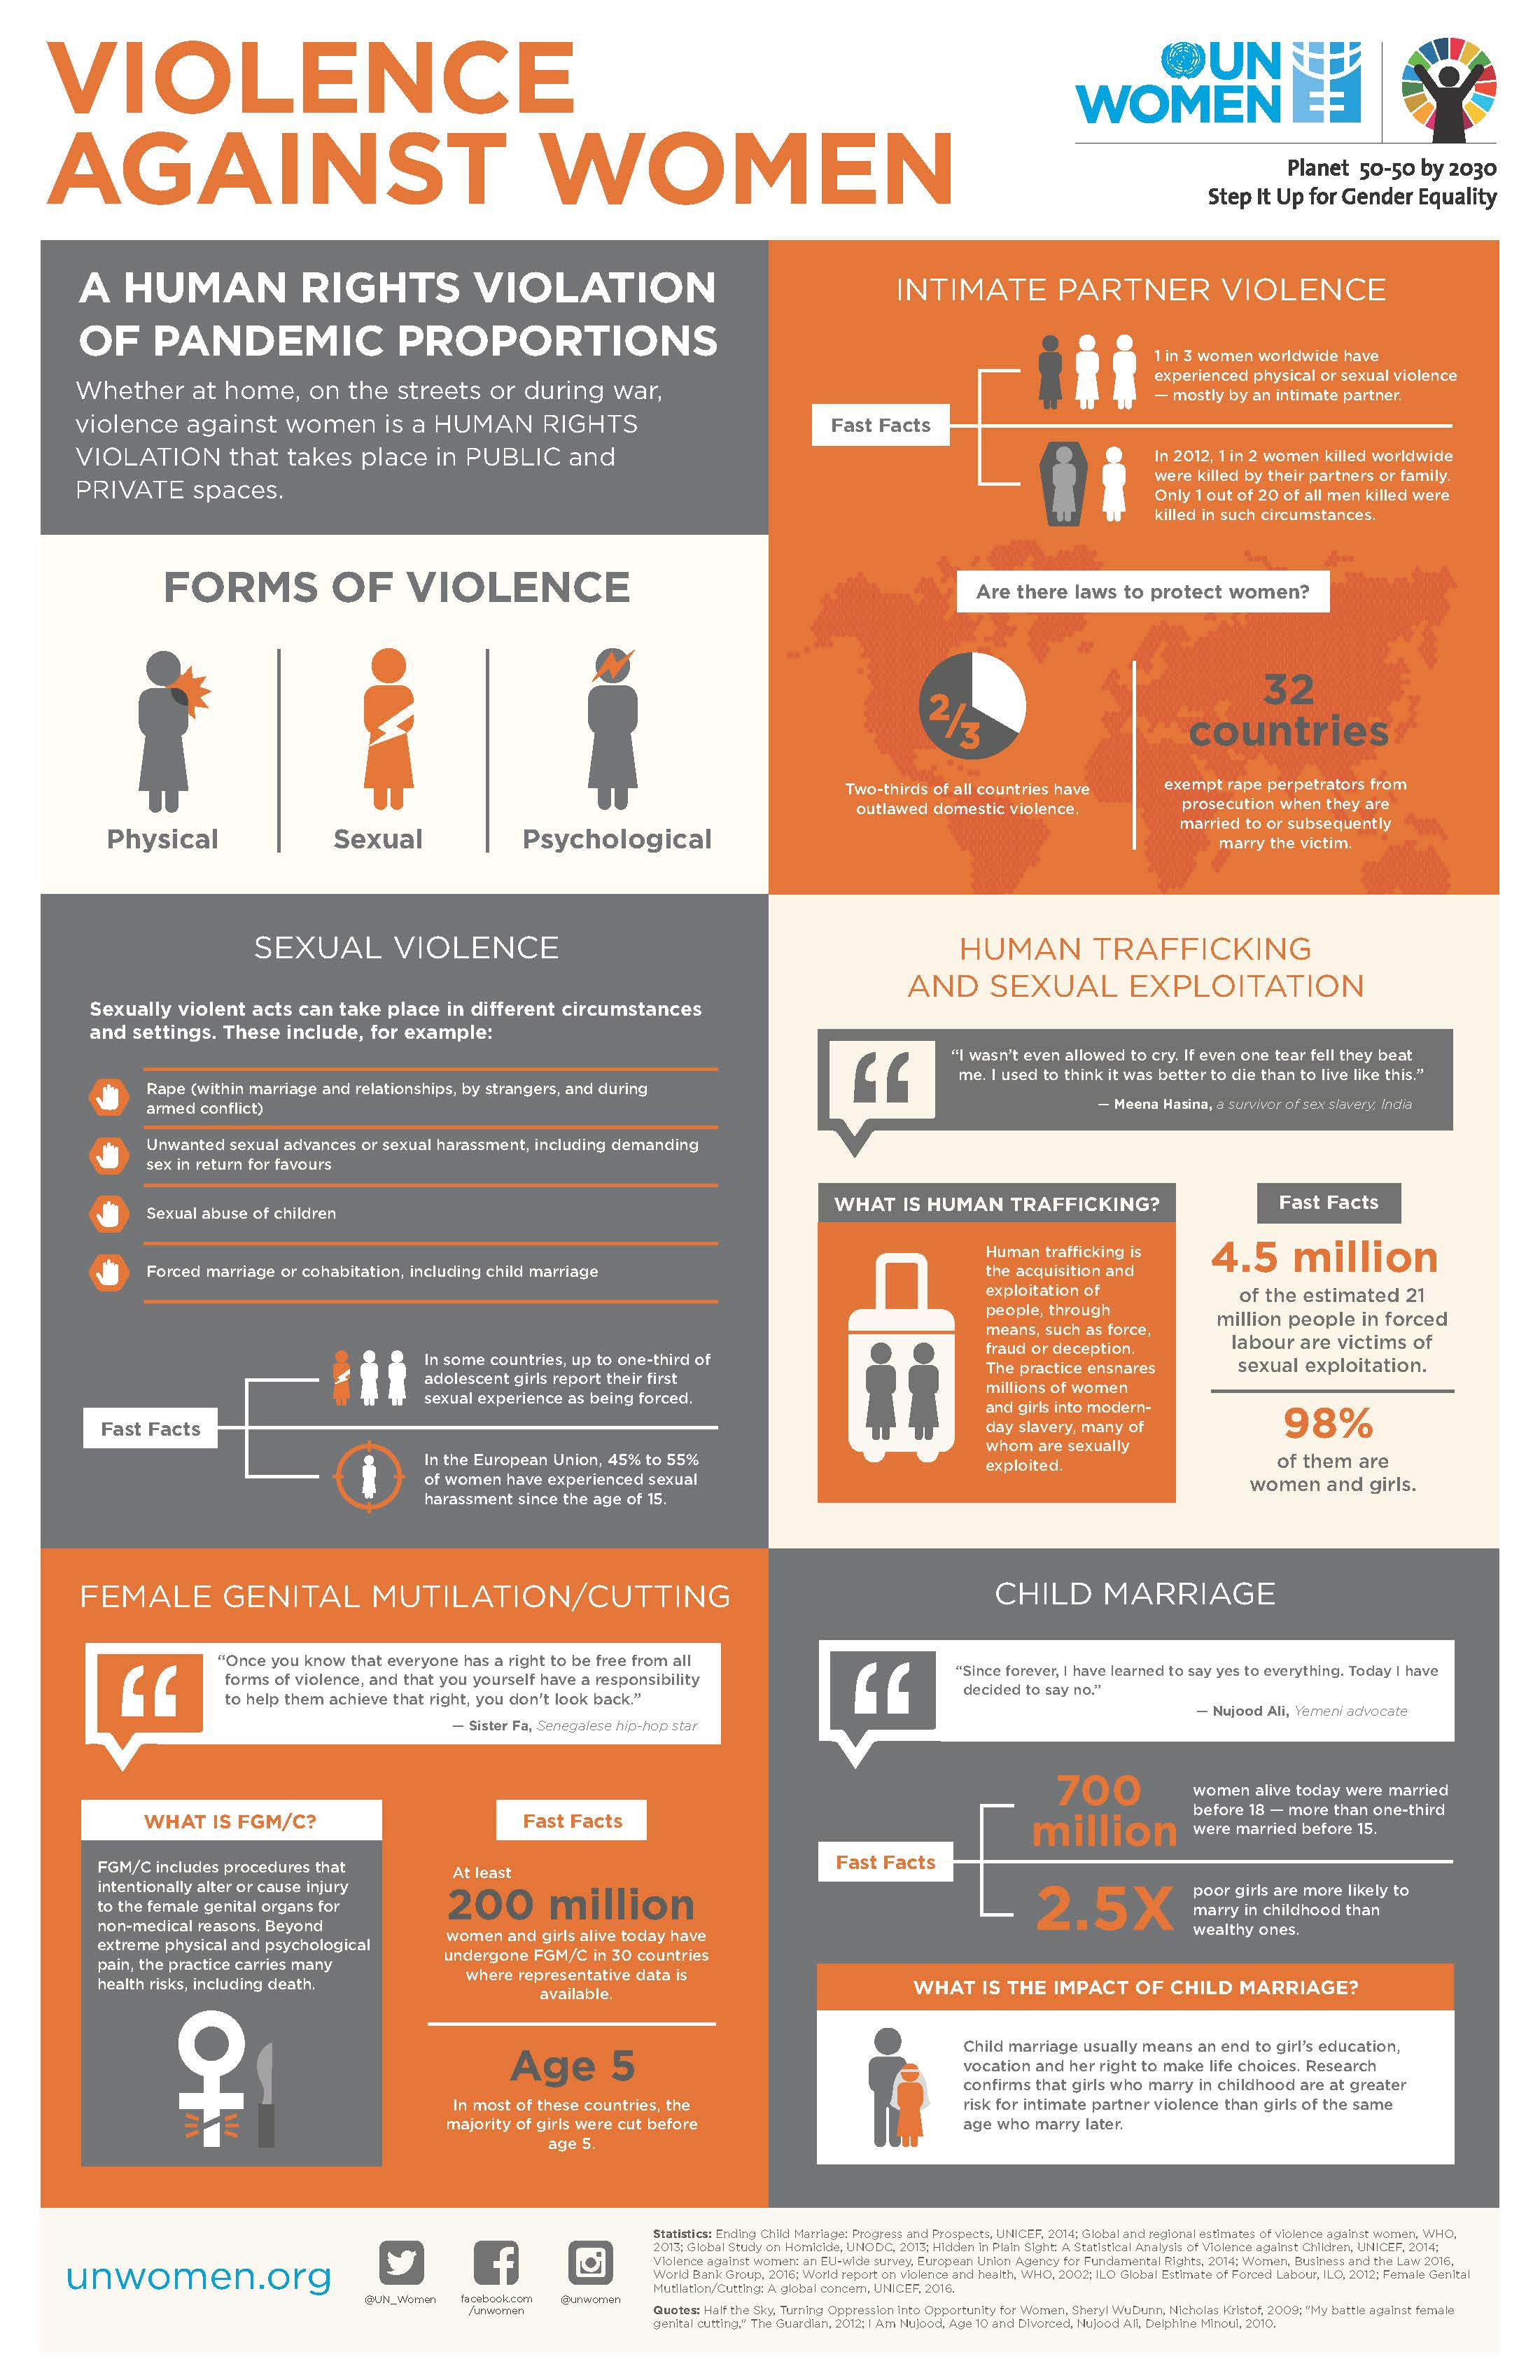 intimate violence and sexual abuse lived experiences essay Youth violence, intimate partner violence victims of child maltreatment more likely to perpetrate youth violence, intimate partner sexual abuse and.